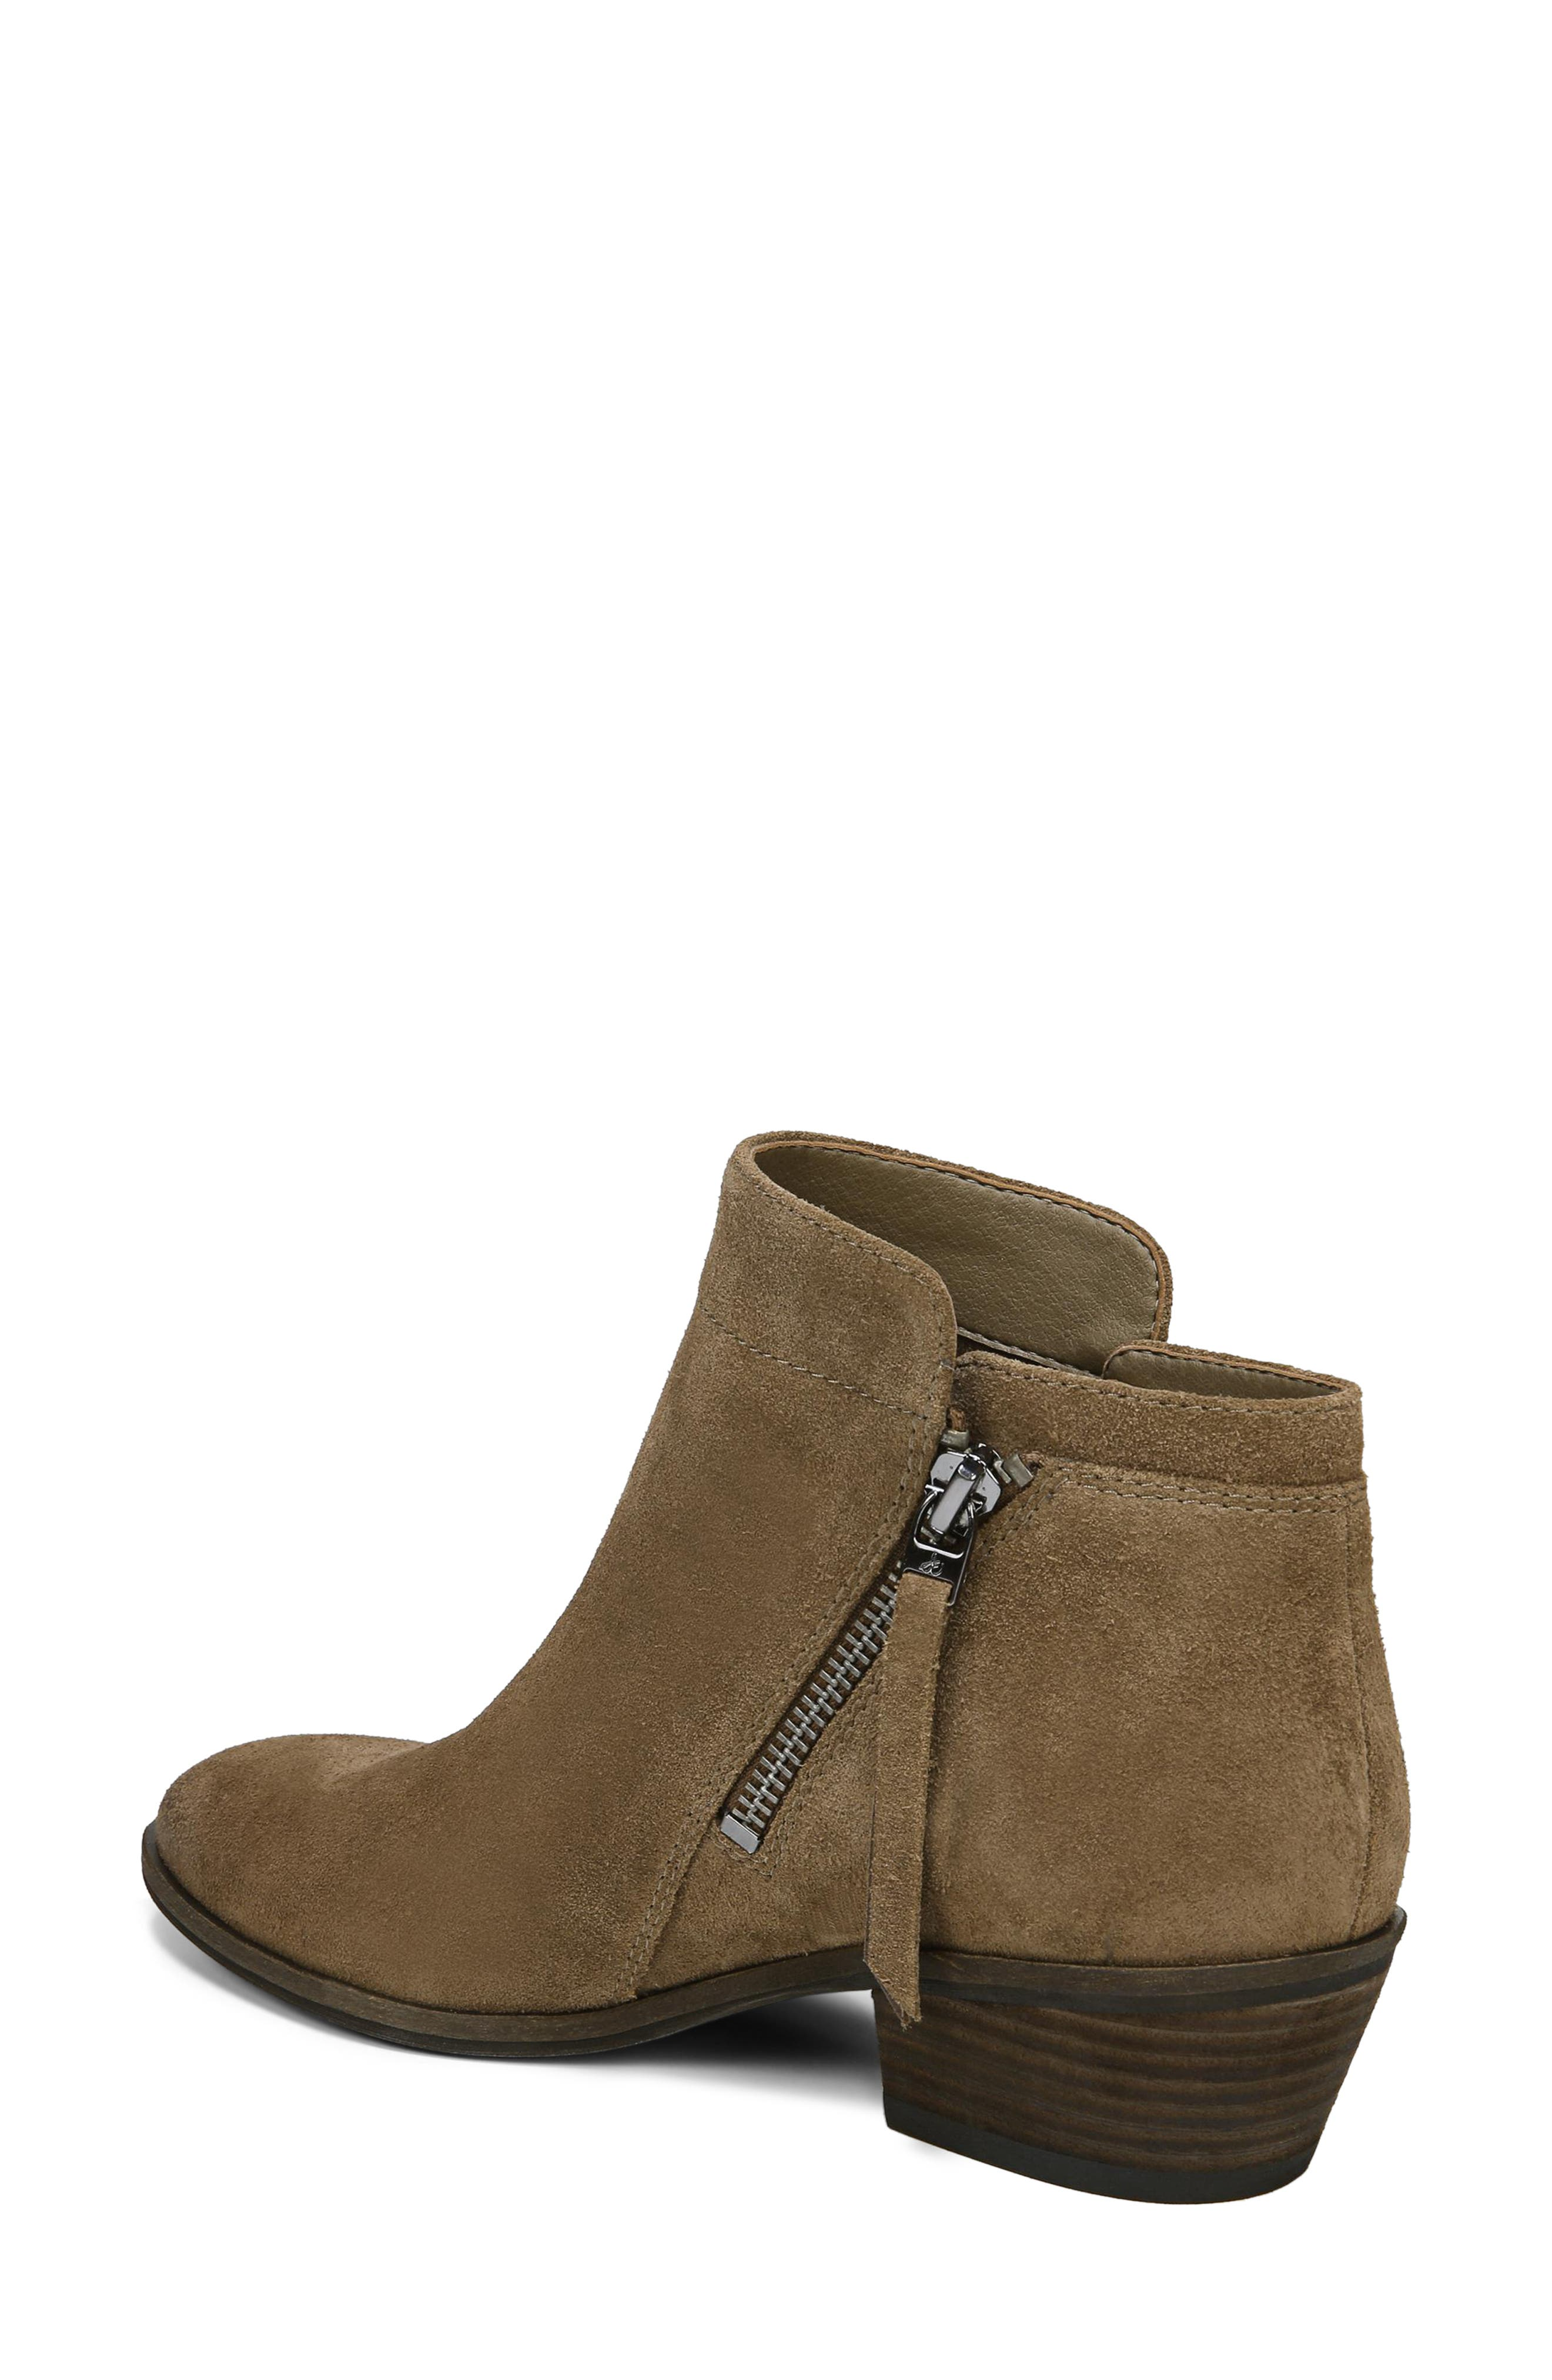 Packer Bootie,                             Alternate thumbnail 2, color,                             DARK TAUPE SUEDE LEATHER